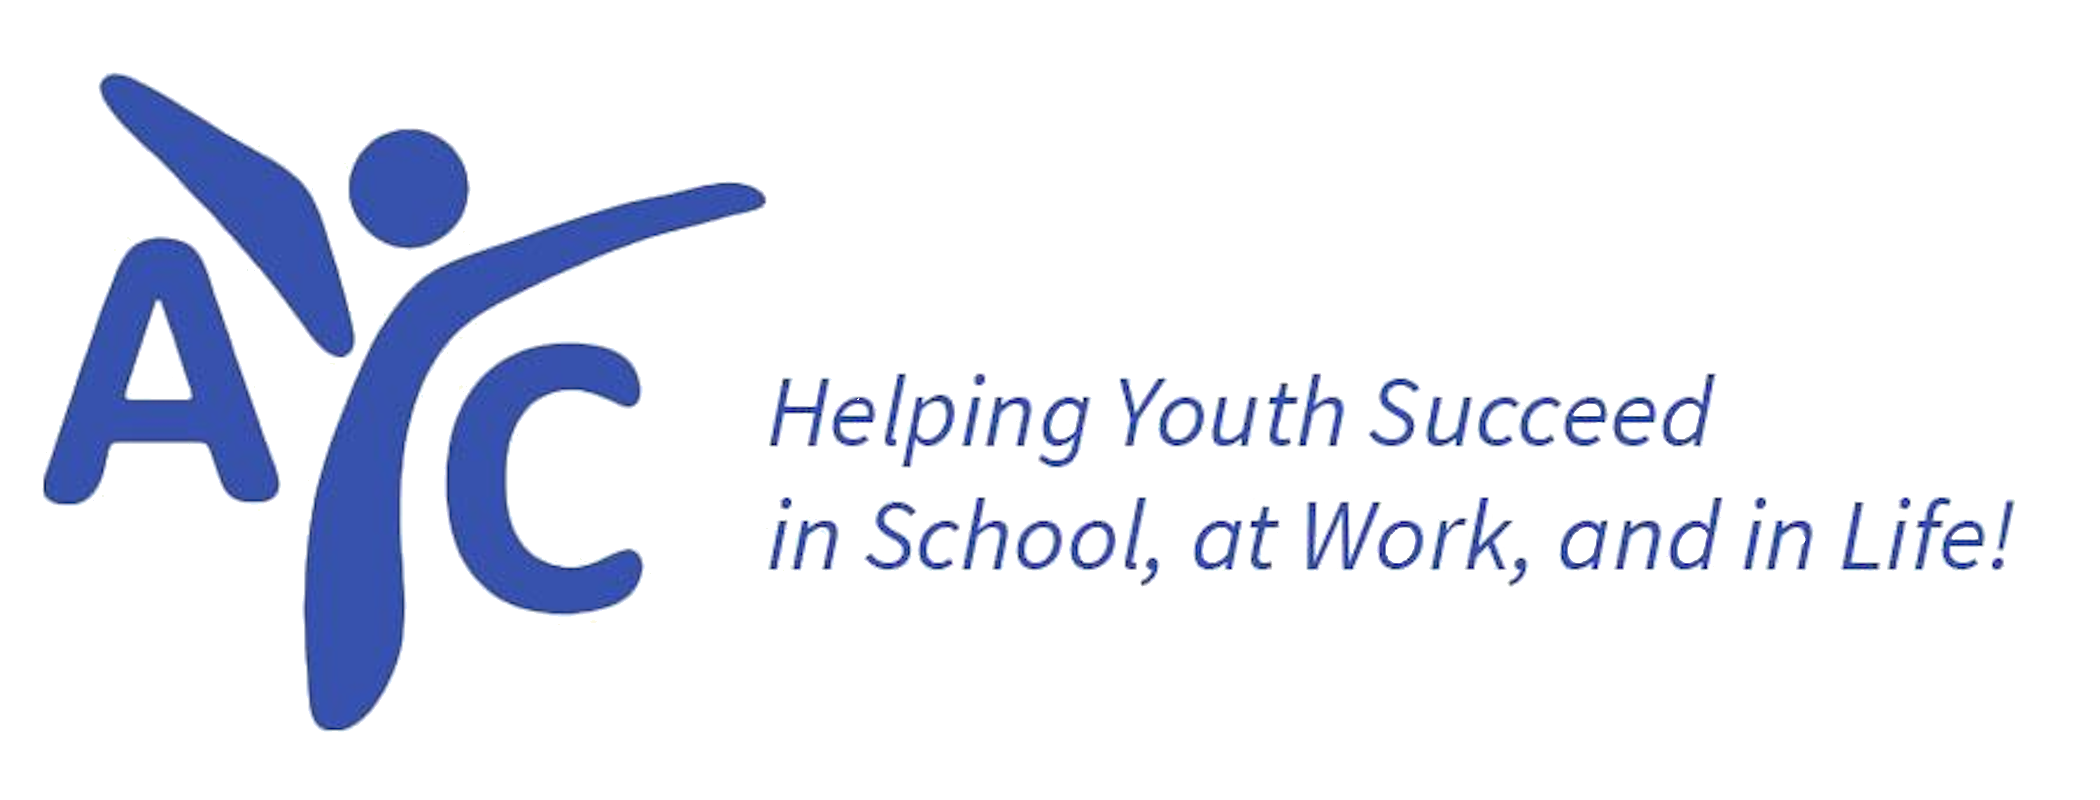 - Asian Youth Center100 W. Clary AveSan Gabriel 91776(626) 309-0622 | asianyouthcenter.org